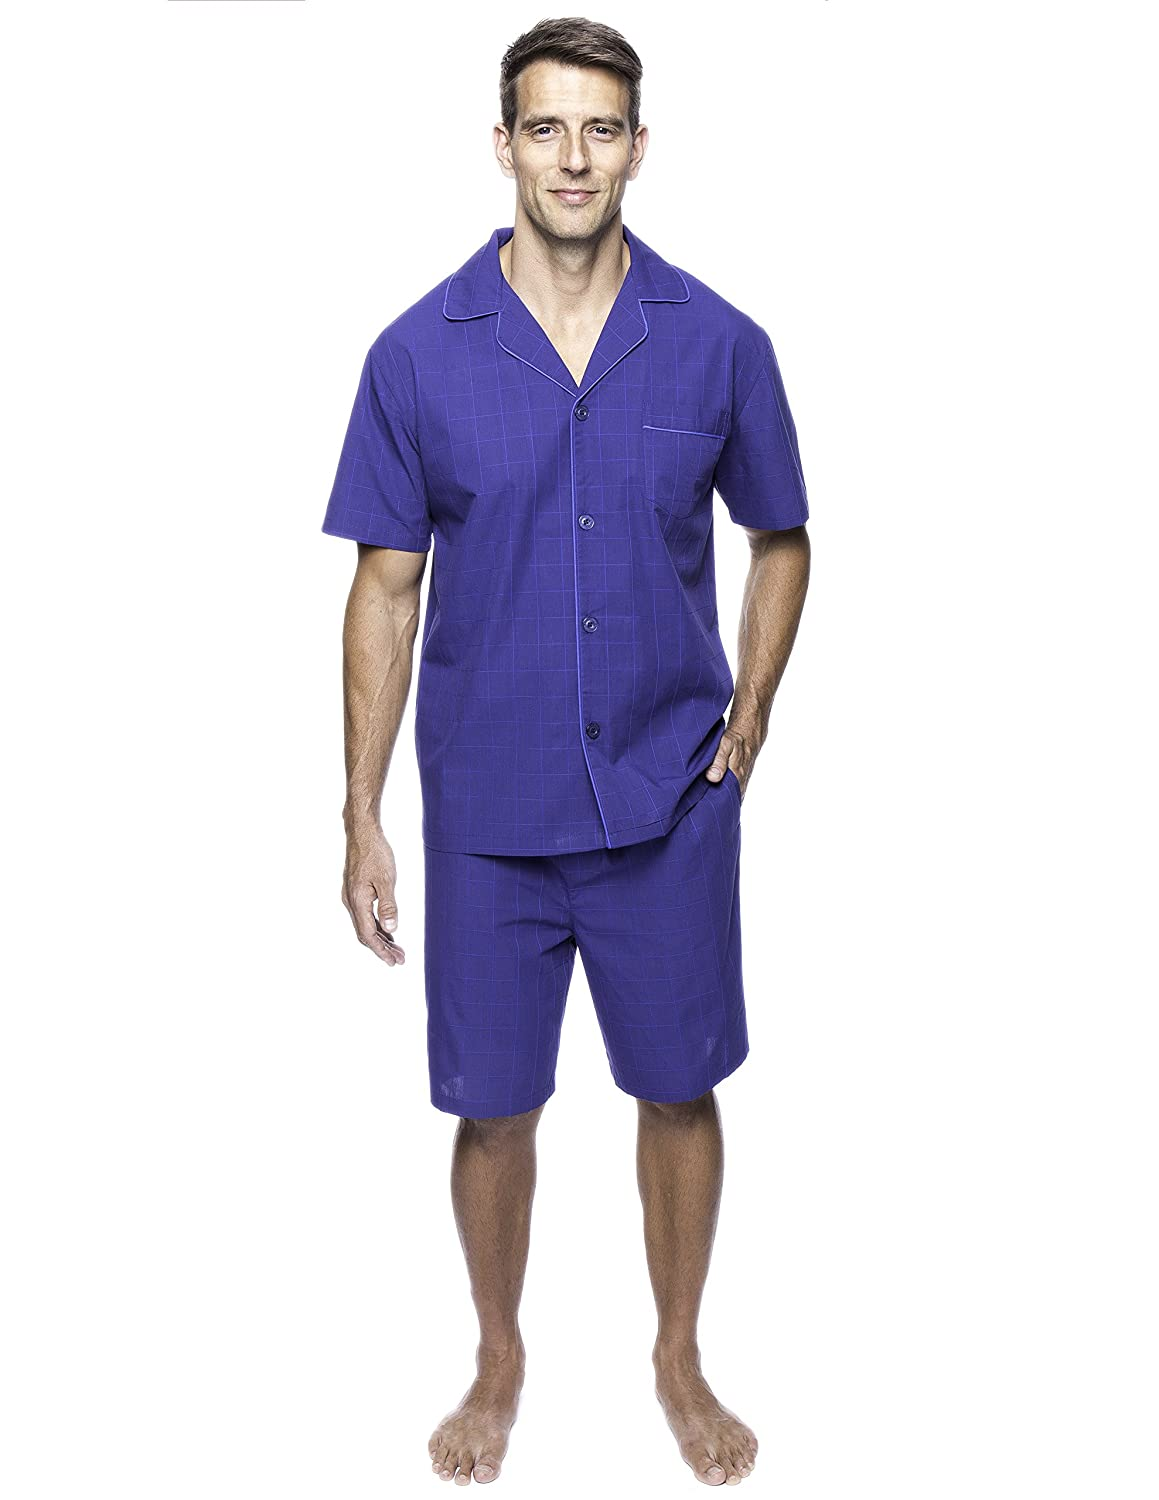 Noble Mount Twin Boat Men's 100% Woven Cotton Short Pajama Sleepwear Set